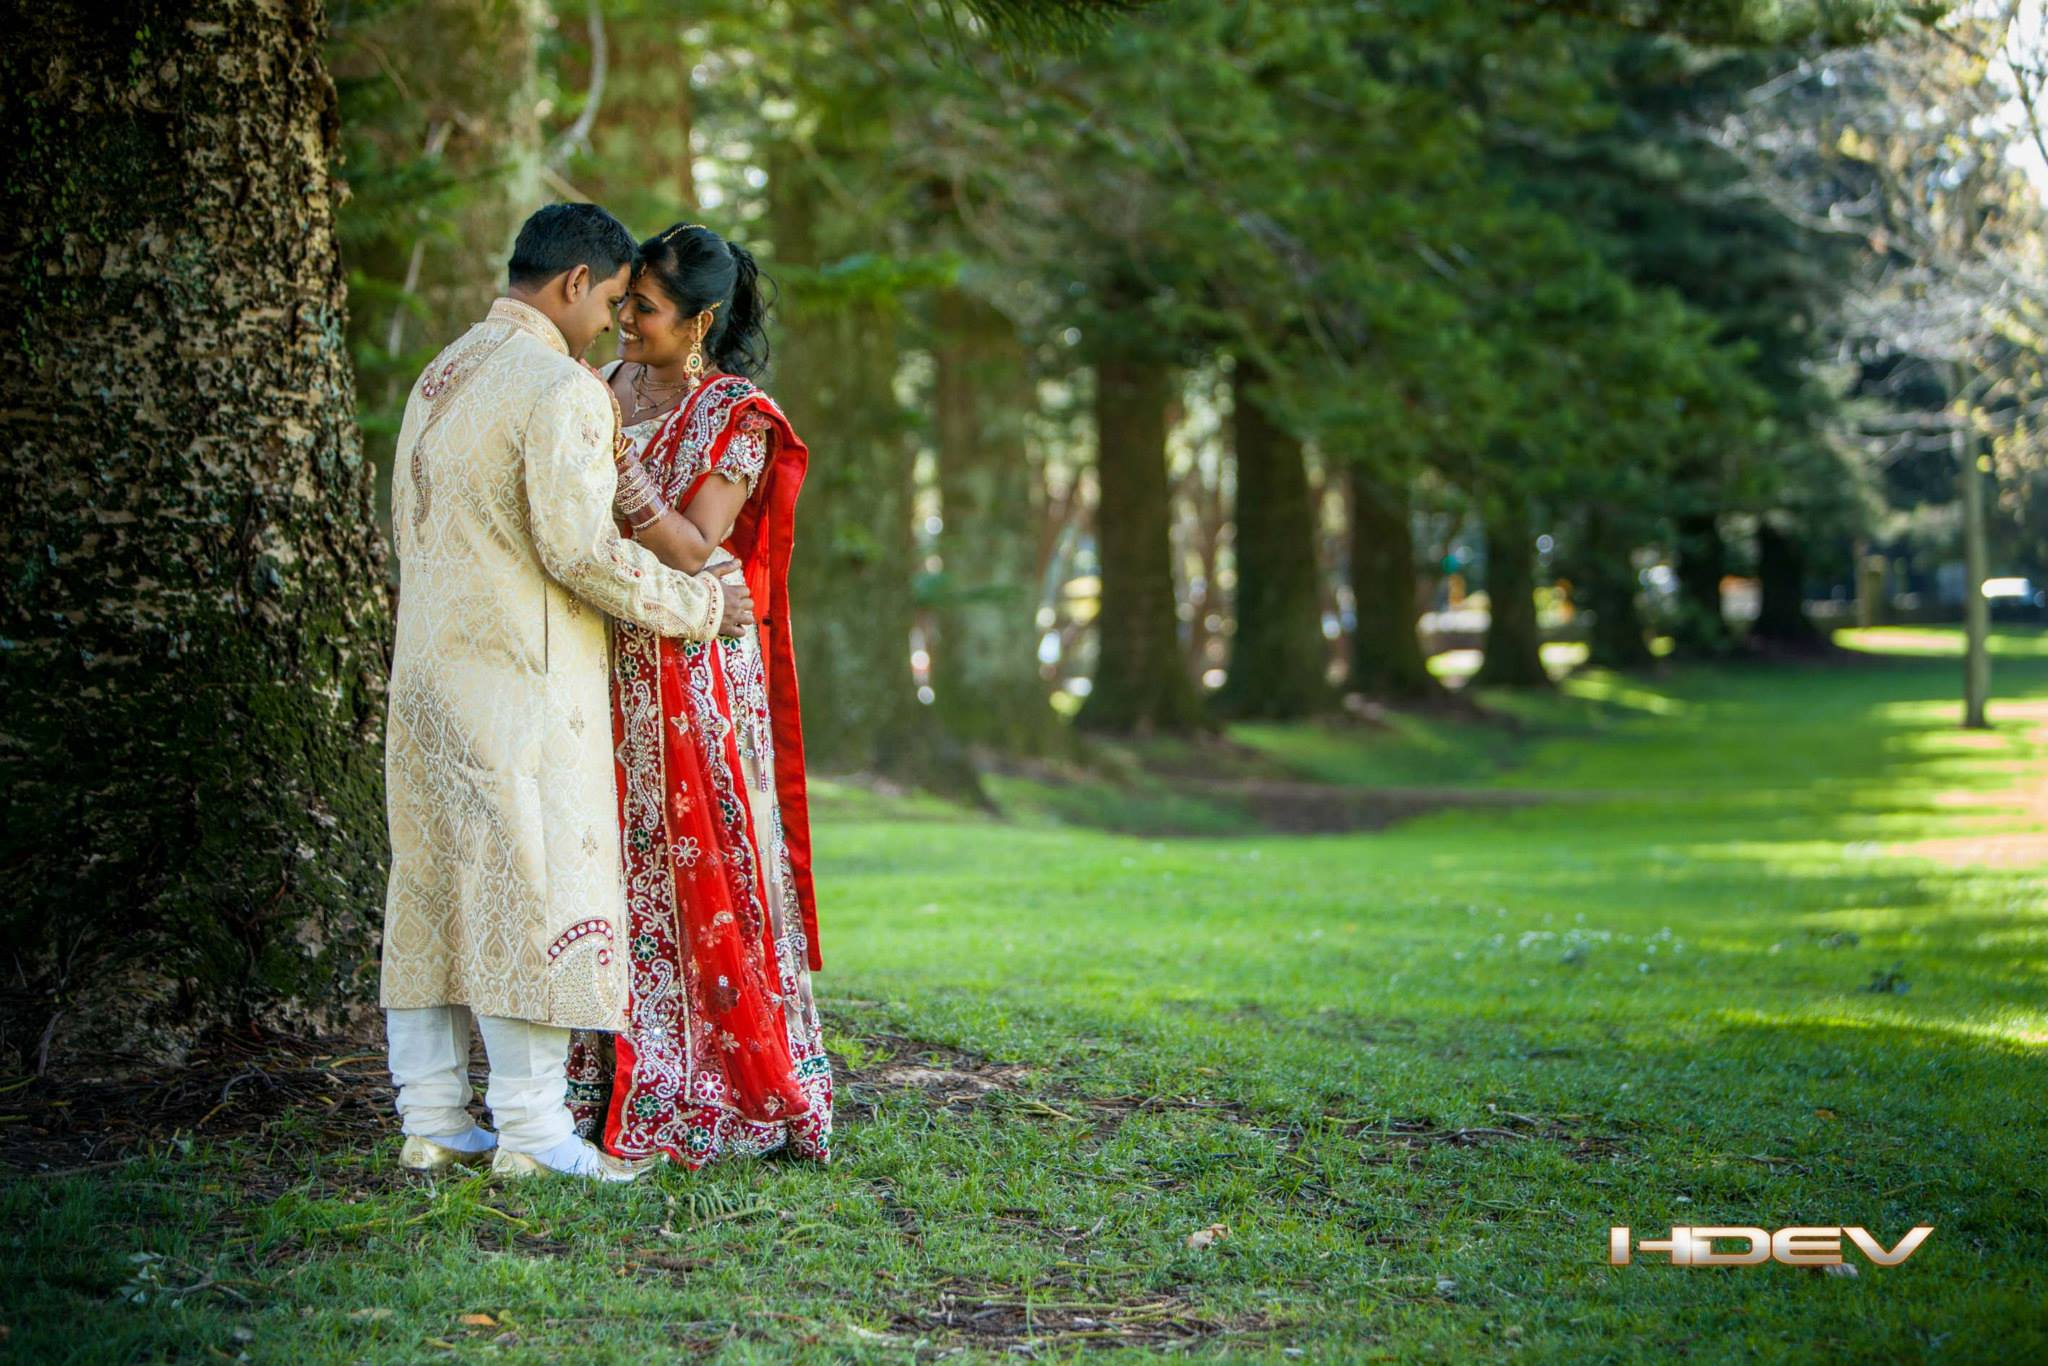 Indian Wedding Photography | Indian Wedding Video & Cinematography